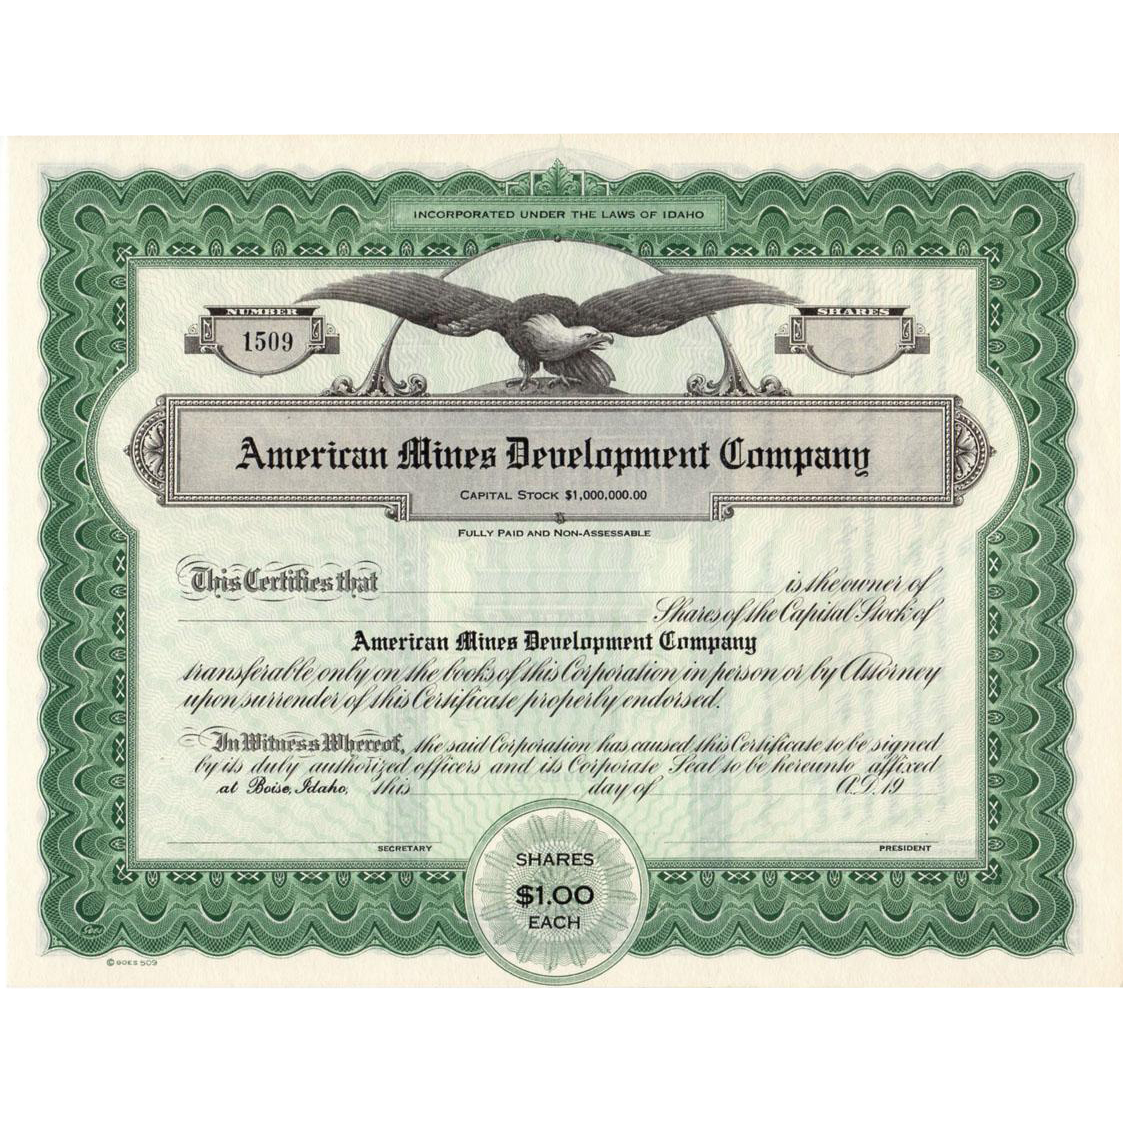 Vintage Idaho Mining Stock - Capital Stock Certificate - Late 1920's - Unissued Stock